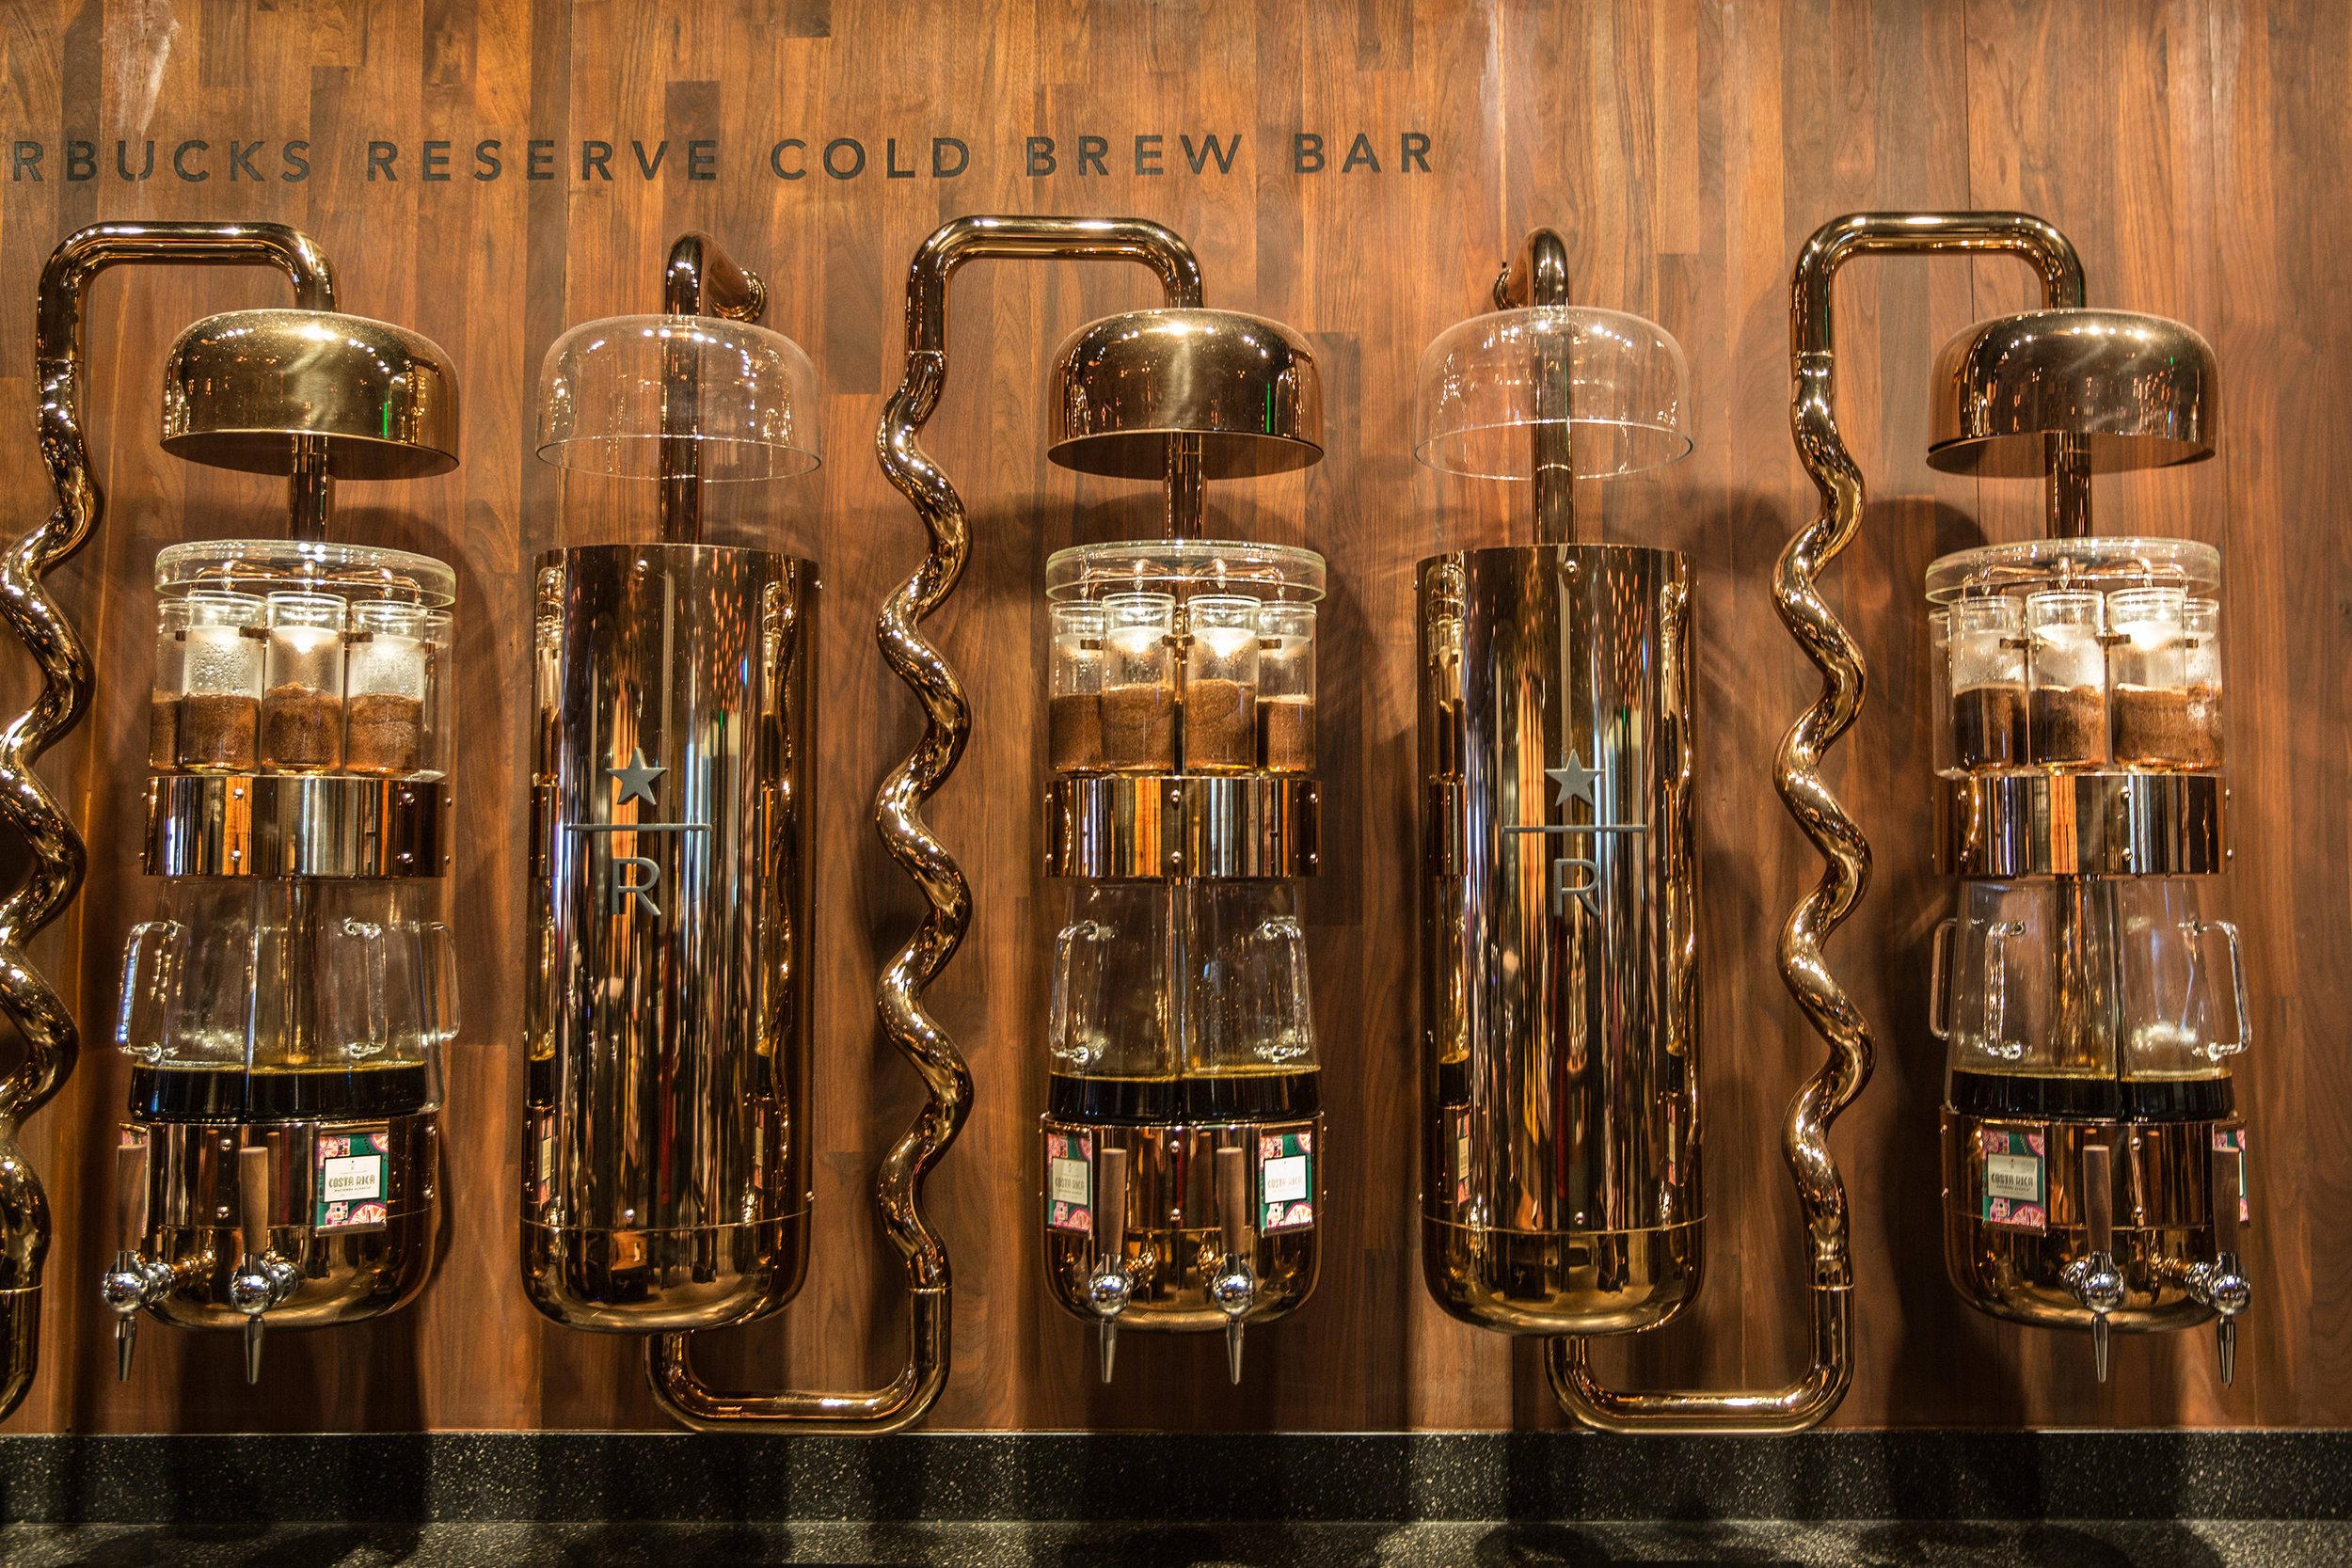 Shanghai Starbucks Roastery Cold Brew Bar.  Photo credit: Moody Man.